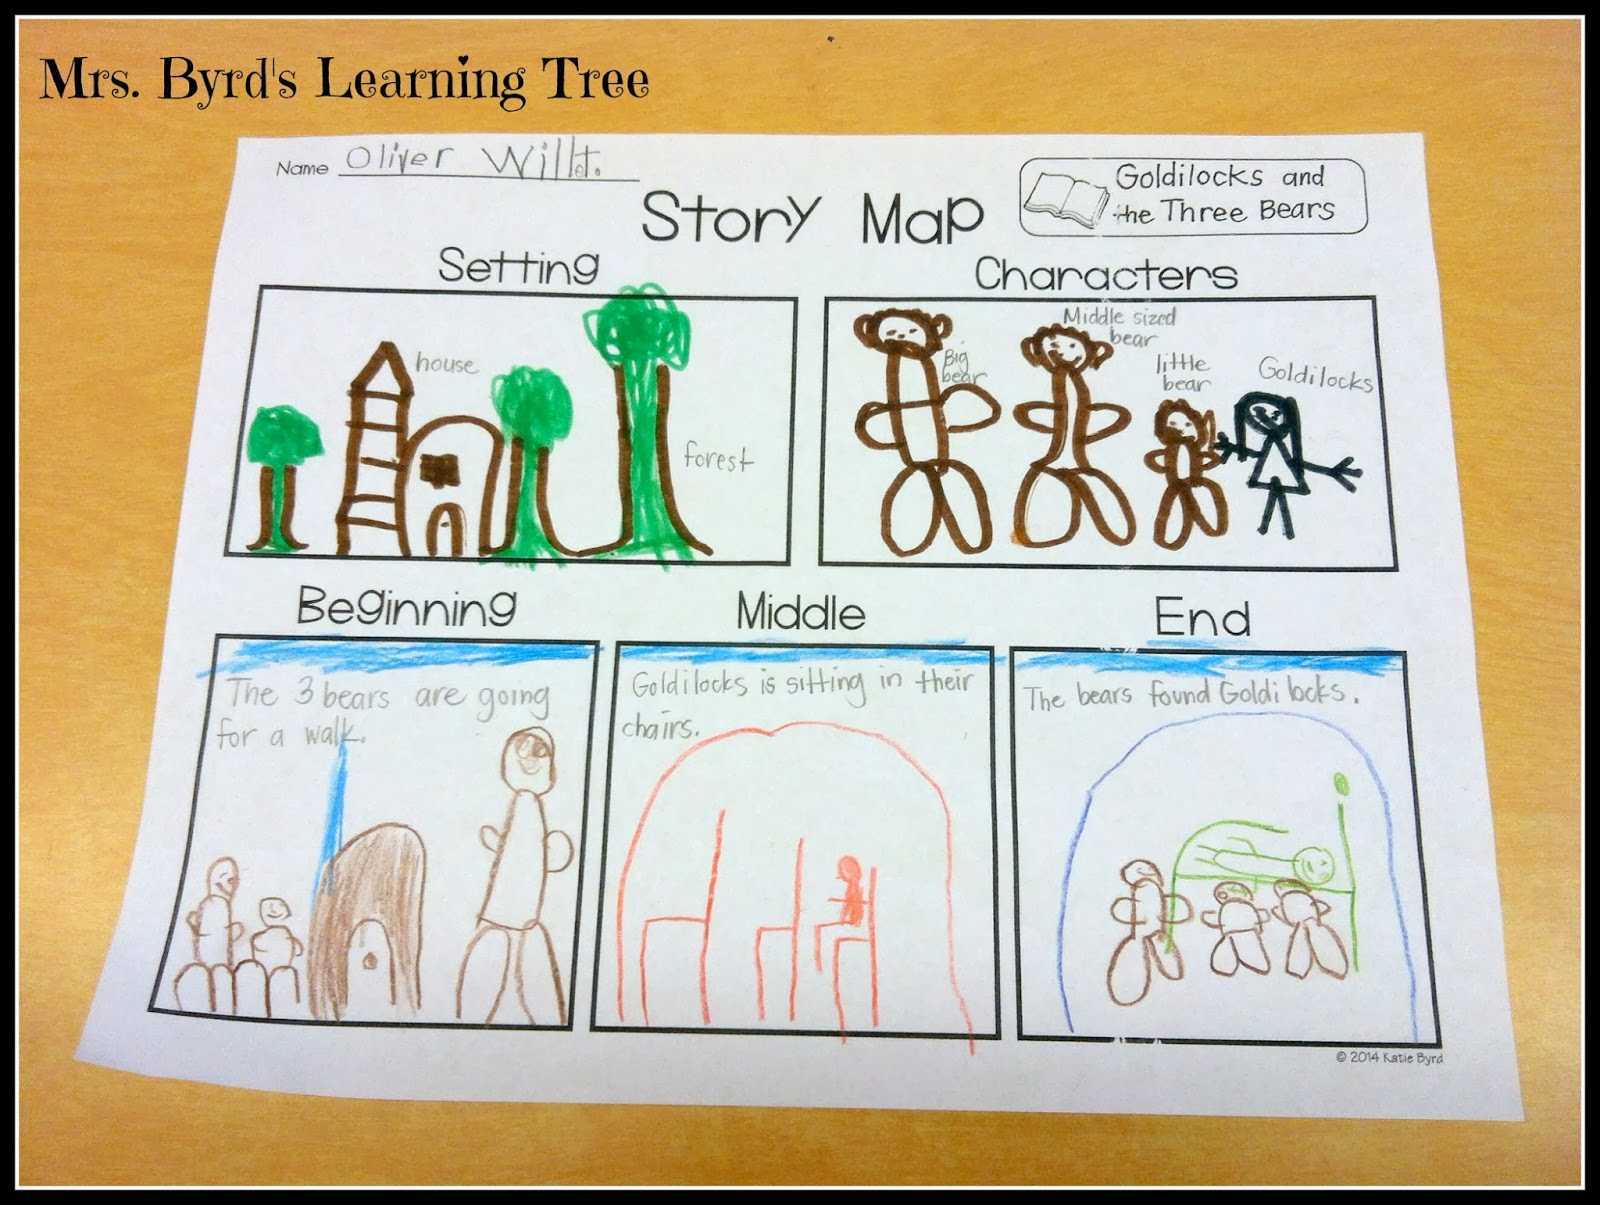 Story Elements Worksheet Pdf together with Mathsheets the Story Mathssheet for All Download and